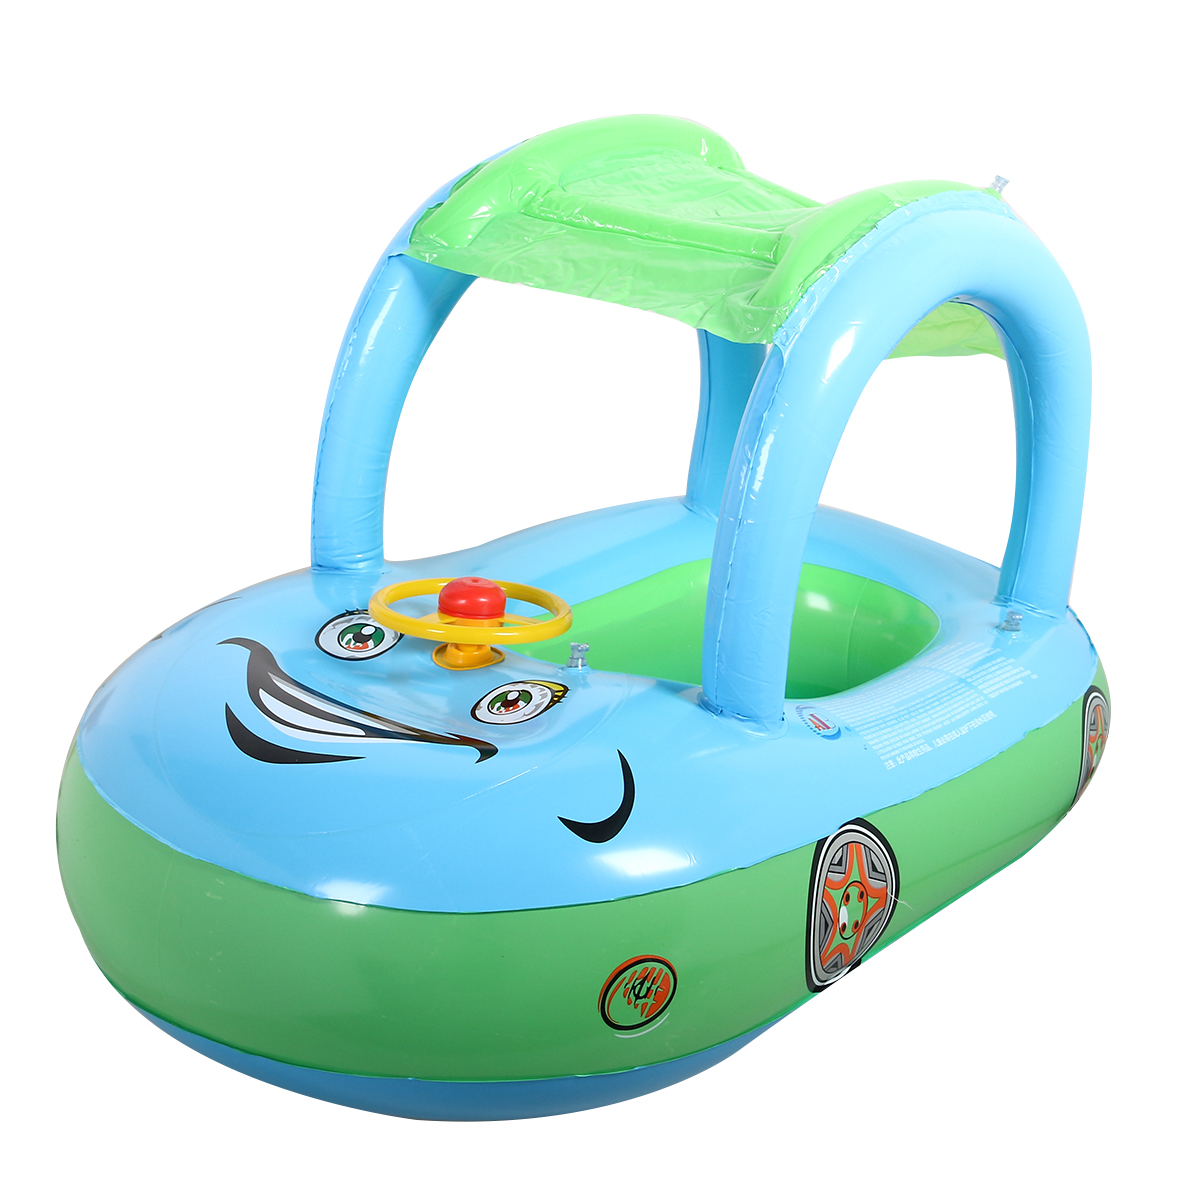 Cute Baby Float Seat Boat with Inflatable Ring Cartoon Car Swim Boat Pool Ring Seat With  sc 1 st  Walmart & Cute Baby Float Seat Boat with Inflatable Ring Cartoon Car Swim ...